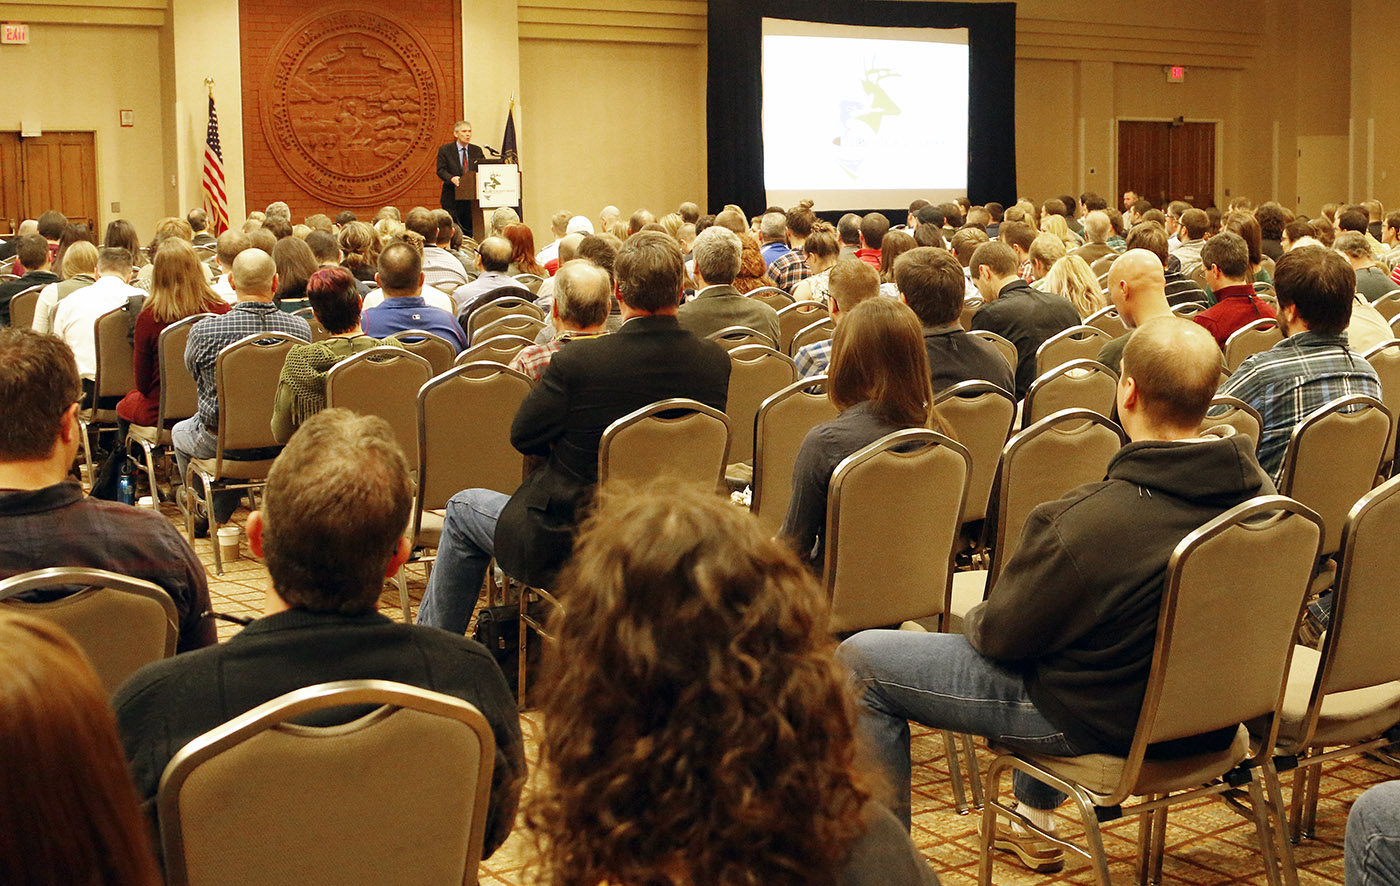 77th Midwest conference examines 'land ethic'